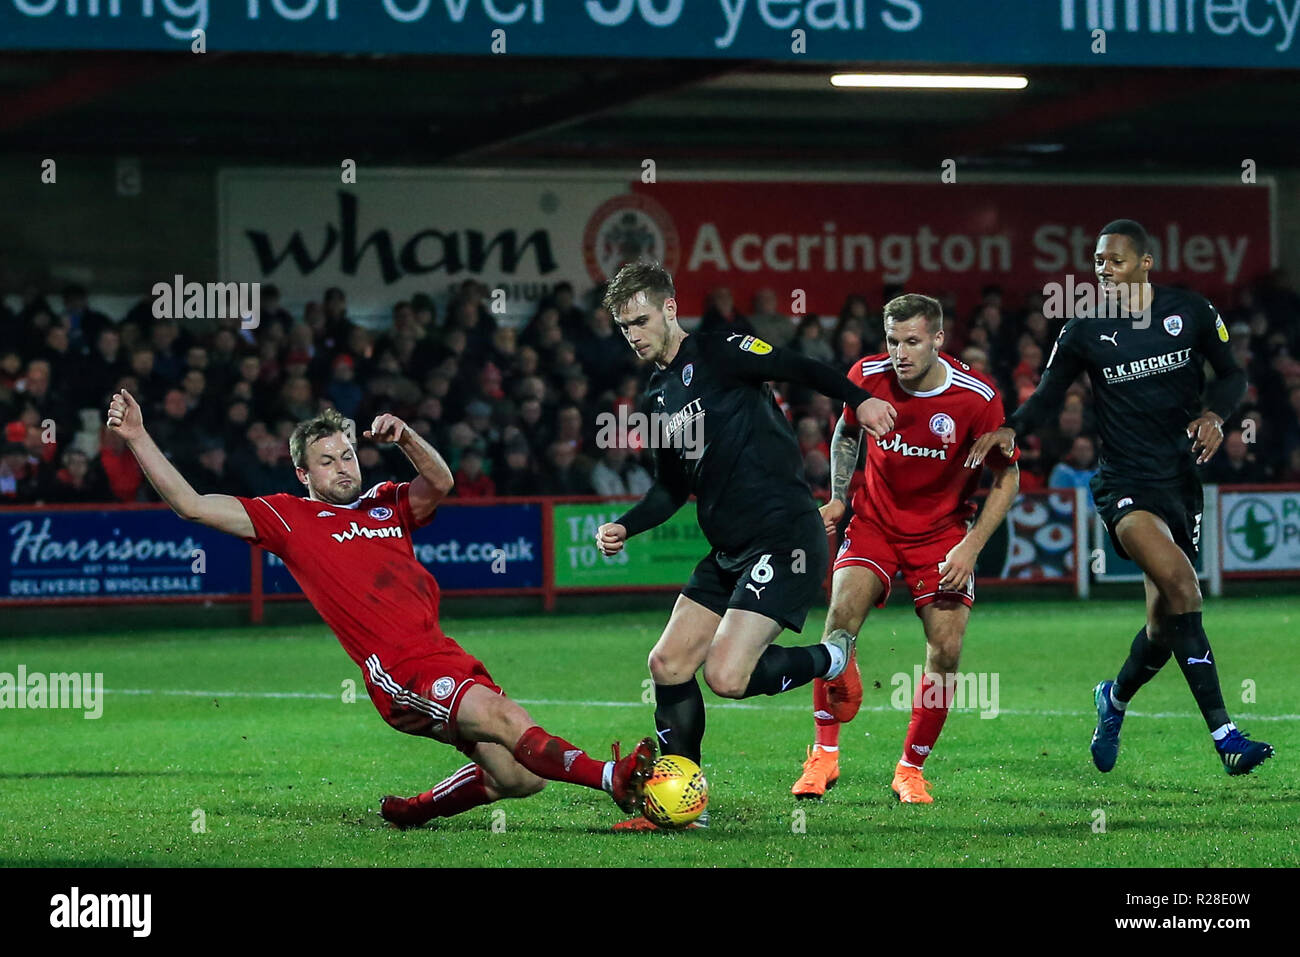 Accrington, UK. 17th November 2018, Crown Ground, Accrington, England; Sky Bet League One, Accrington Stanley v Barnsley ; Mark Hughes (03) of Accrington Stanley slides in to win the ball from Liam Lindsay (06) of Barnsley    Credit: Mark Cosgrove/News Images  English Football League images are subject to DataCo Licence Credit: News Images /Alamy Live News - Stock Image